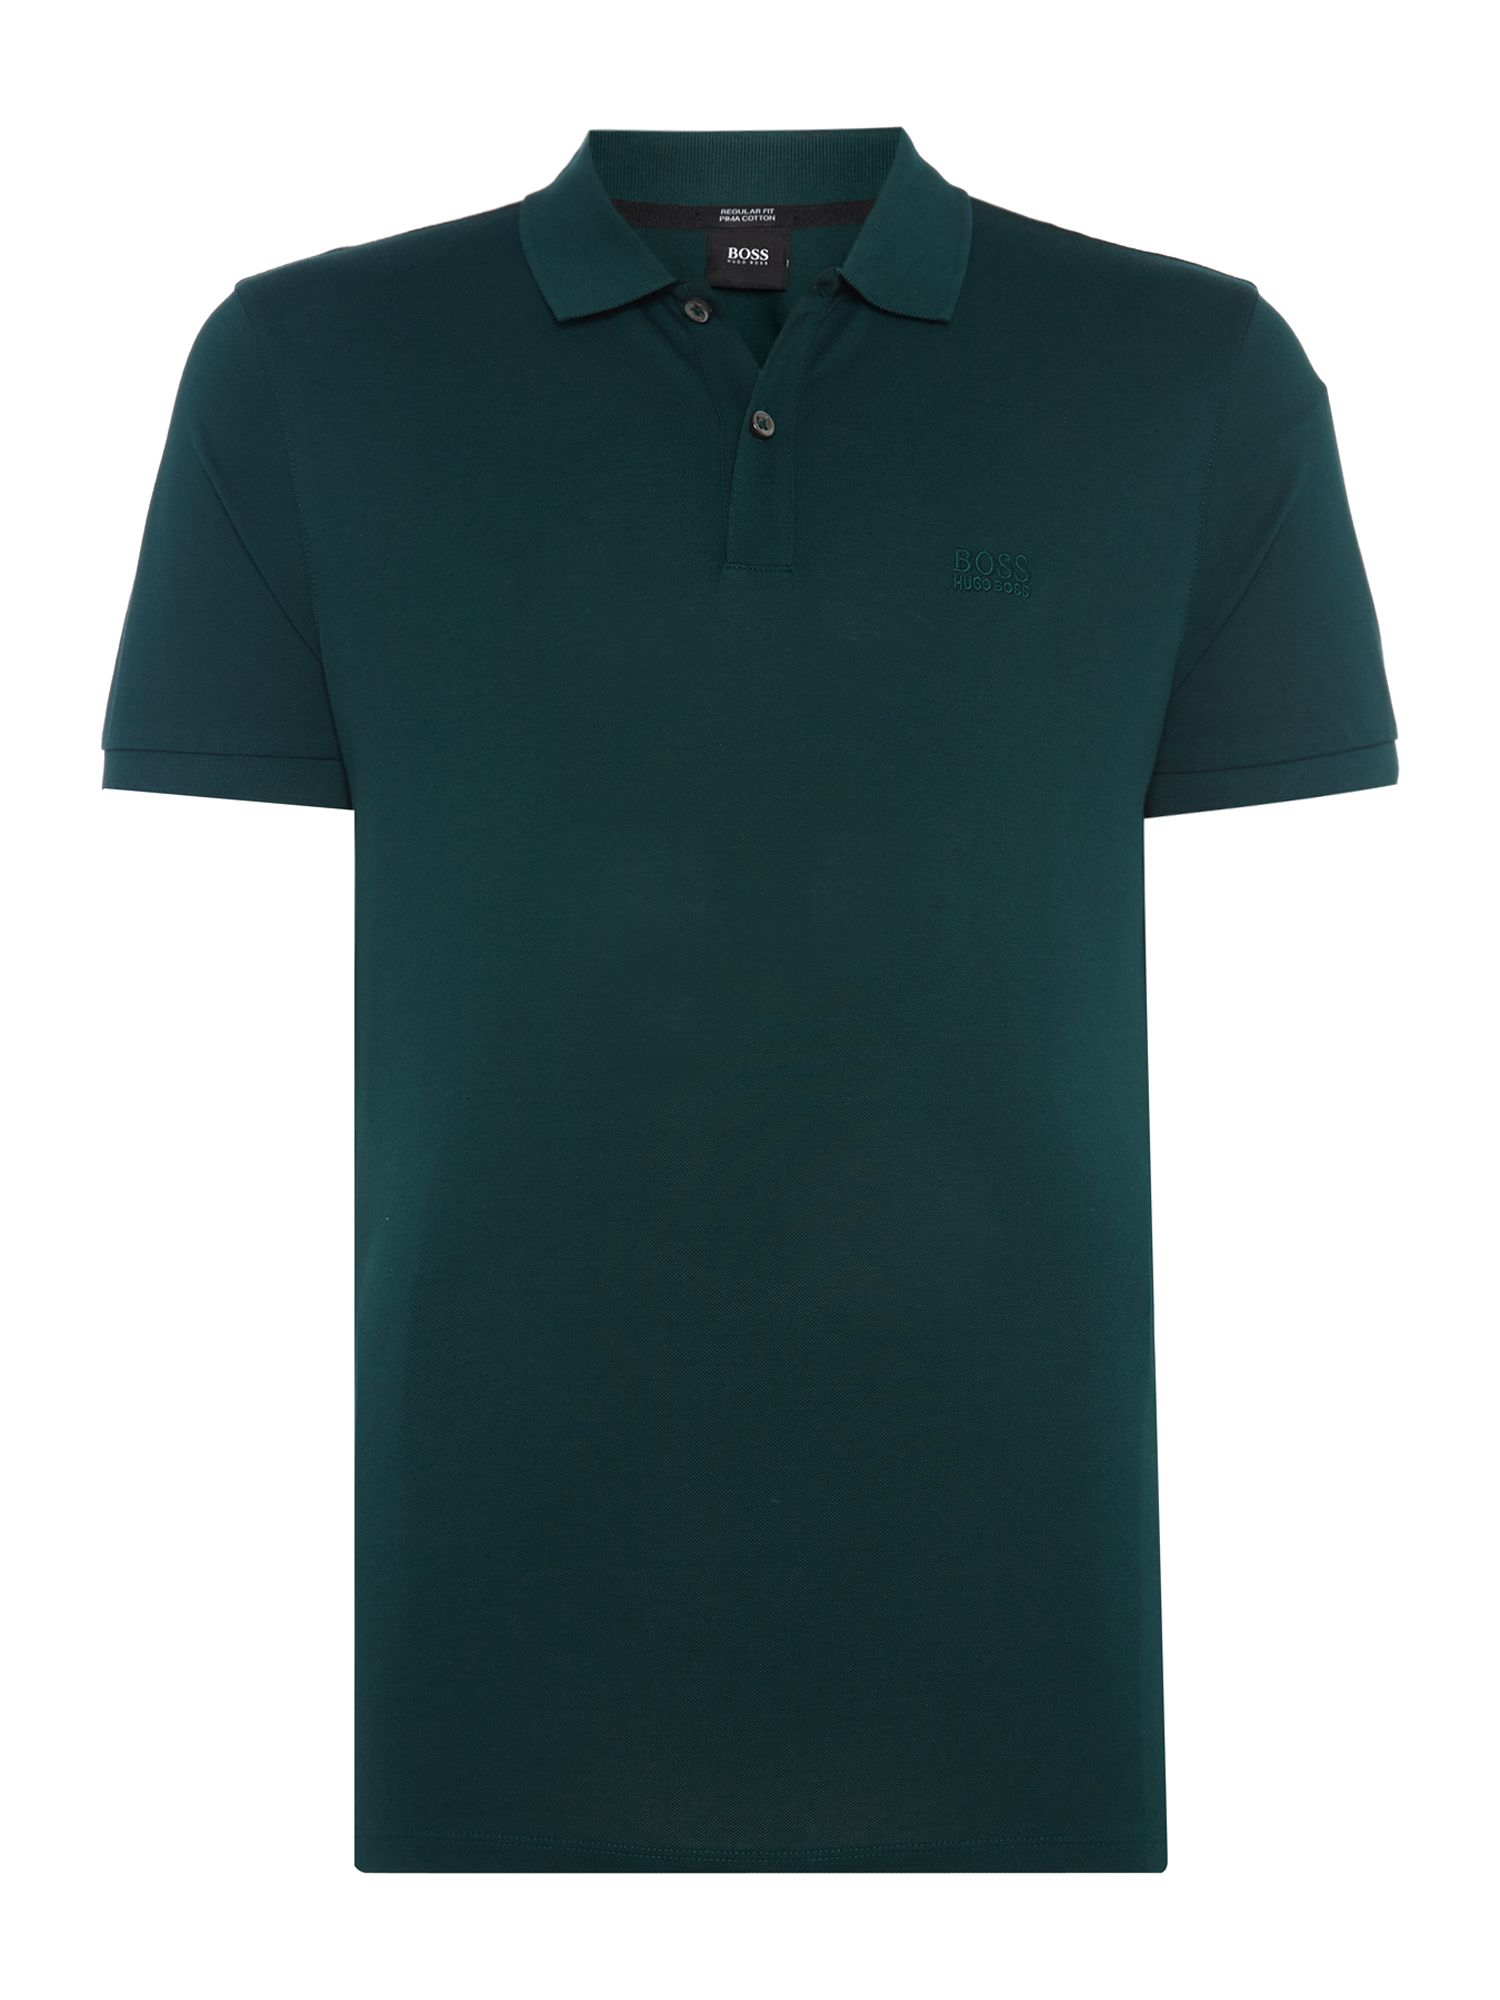 Men's Hugo Boss Pallas Regular Fit Short Sleeve Logo Polo, Green